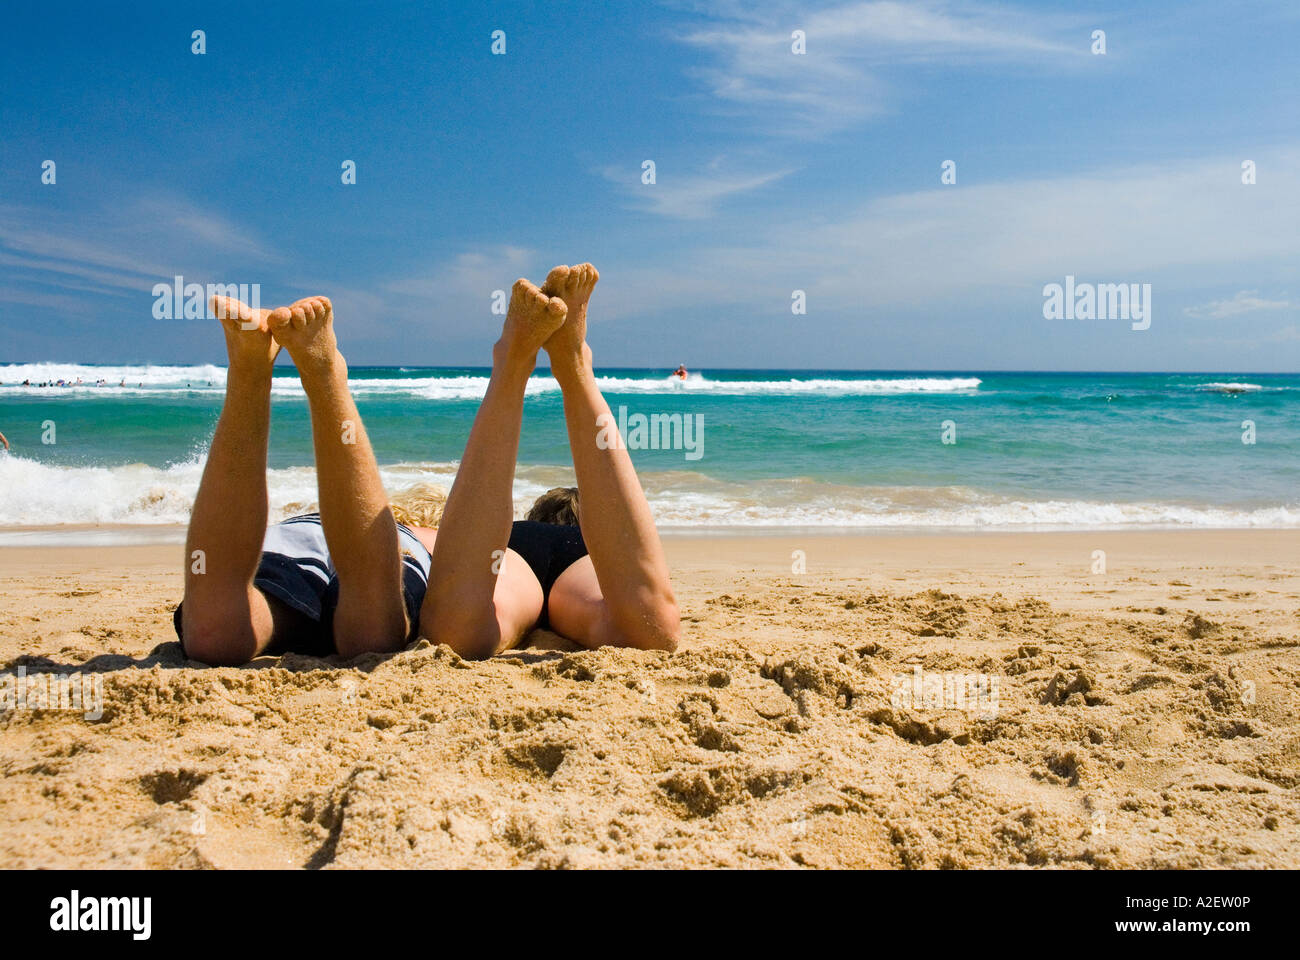 Two People A Couple Lying On Tropical Beach Facing The Ocean Sand Blue Sky